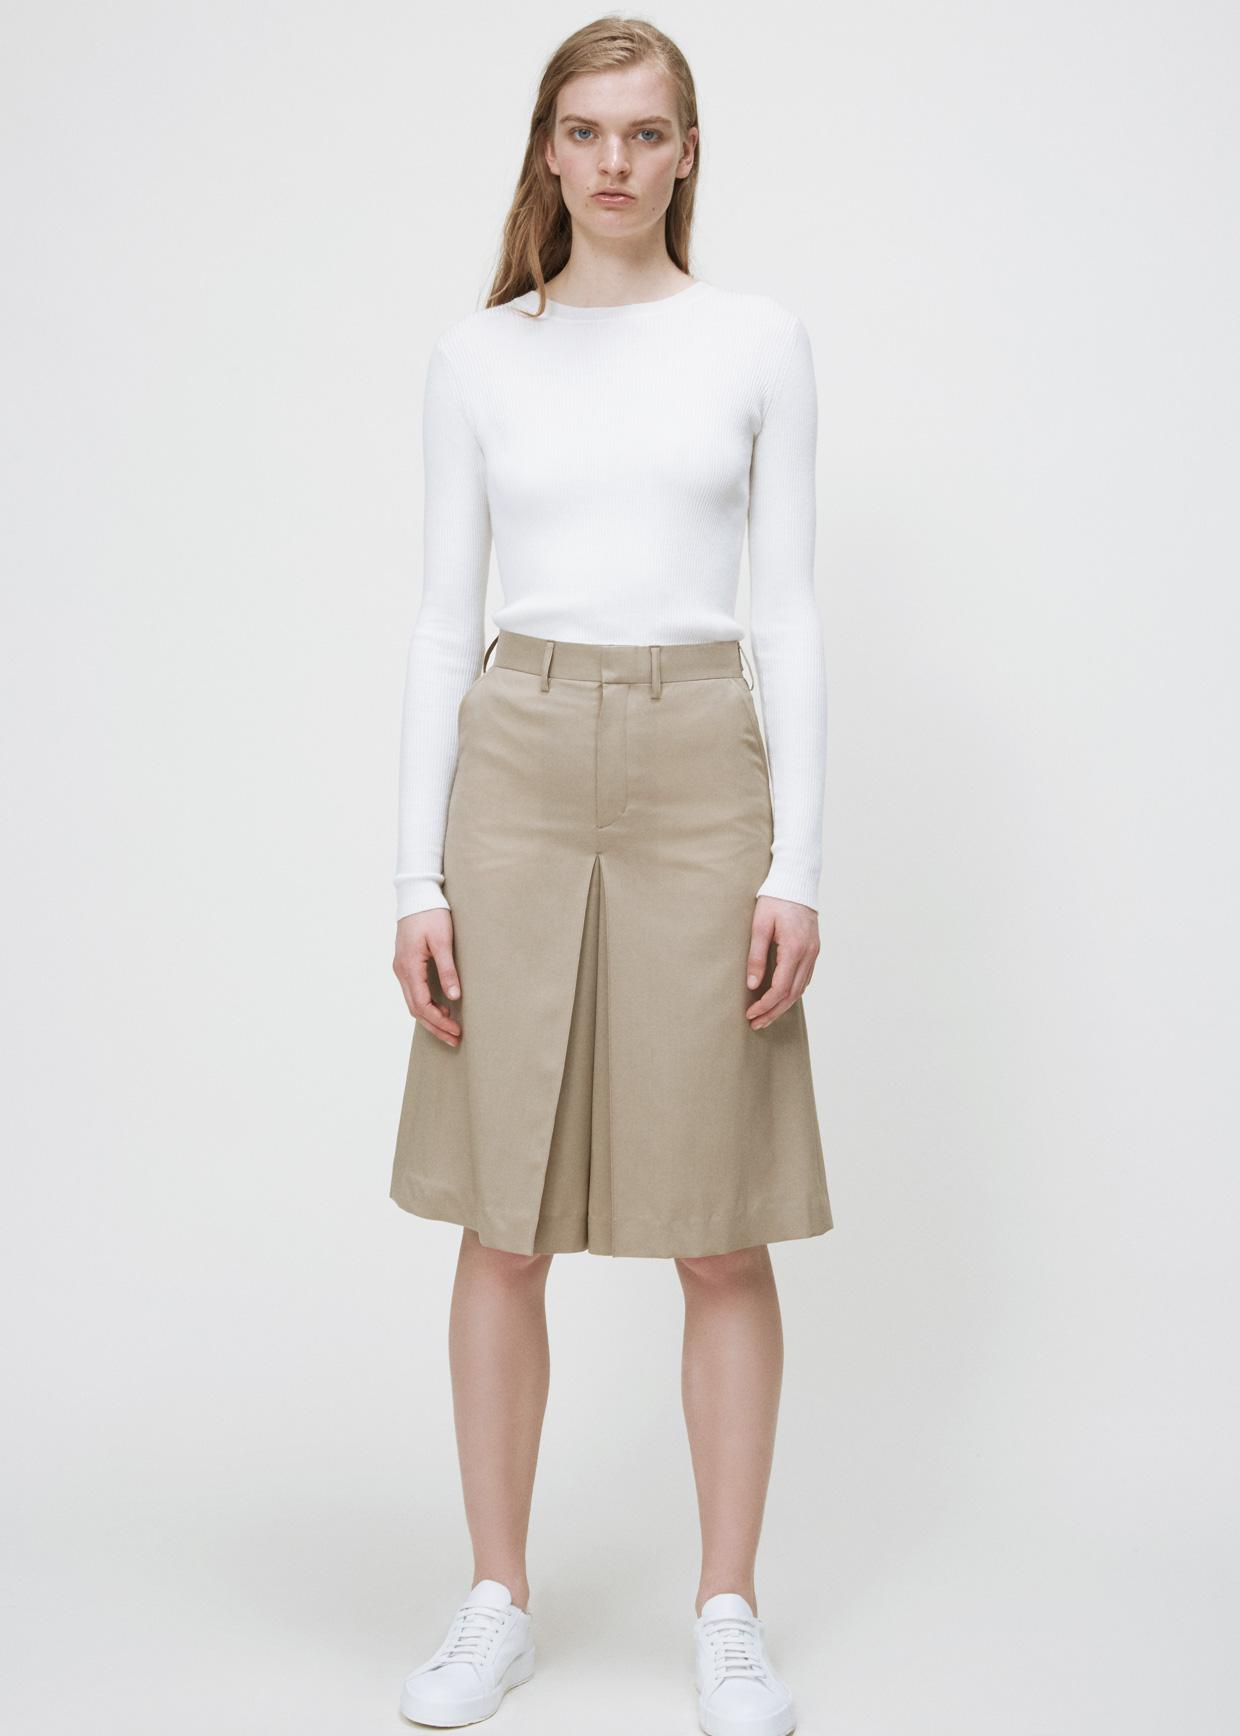 Hyke Beige Culotte Skirt In Natural Lyst